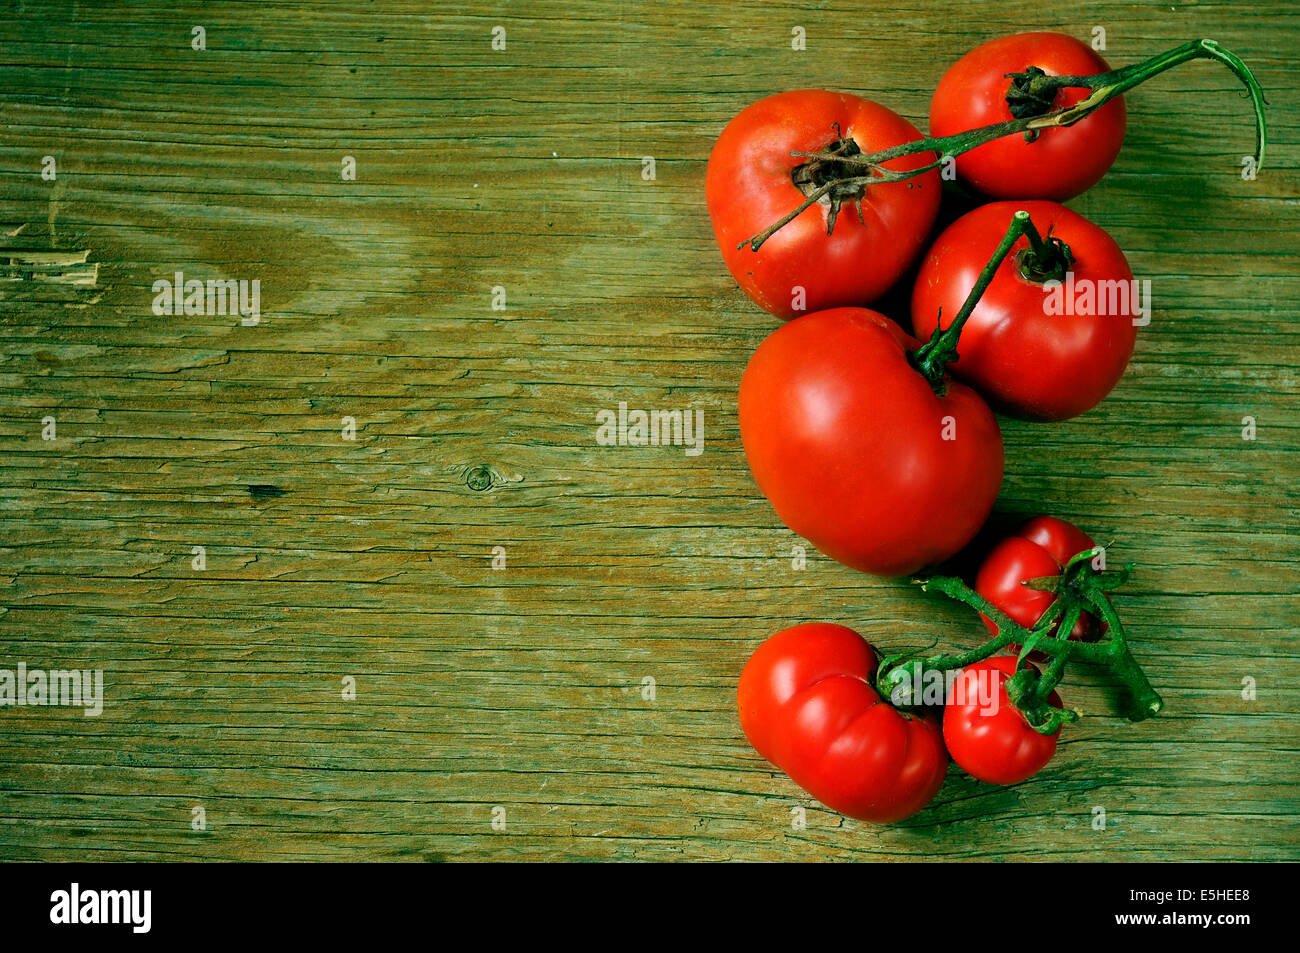 a bunch of ripe tomatoes on a rustic wooden table, with a filter effect - Stock Image